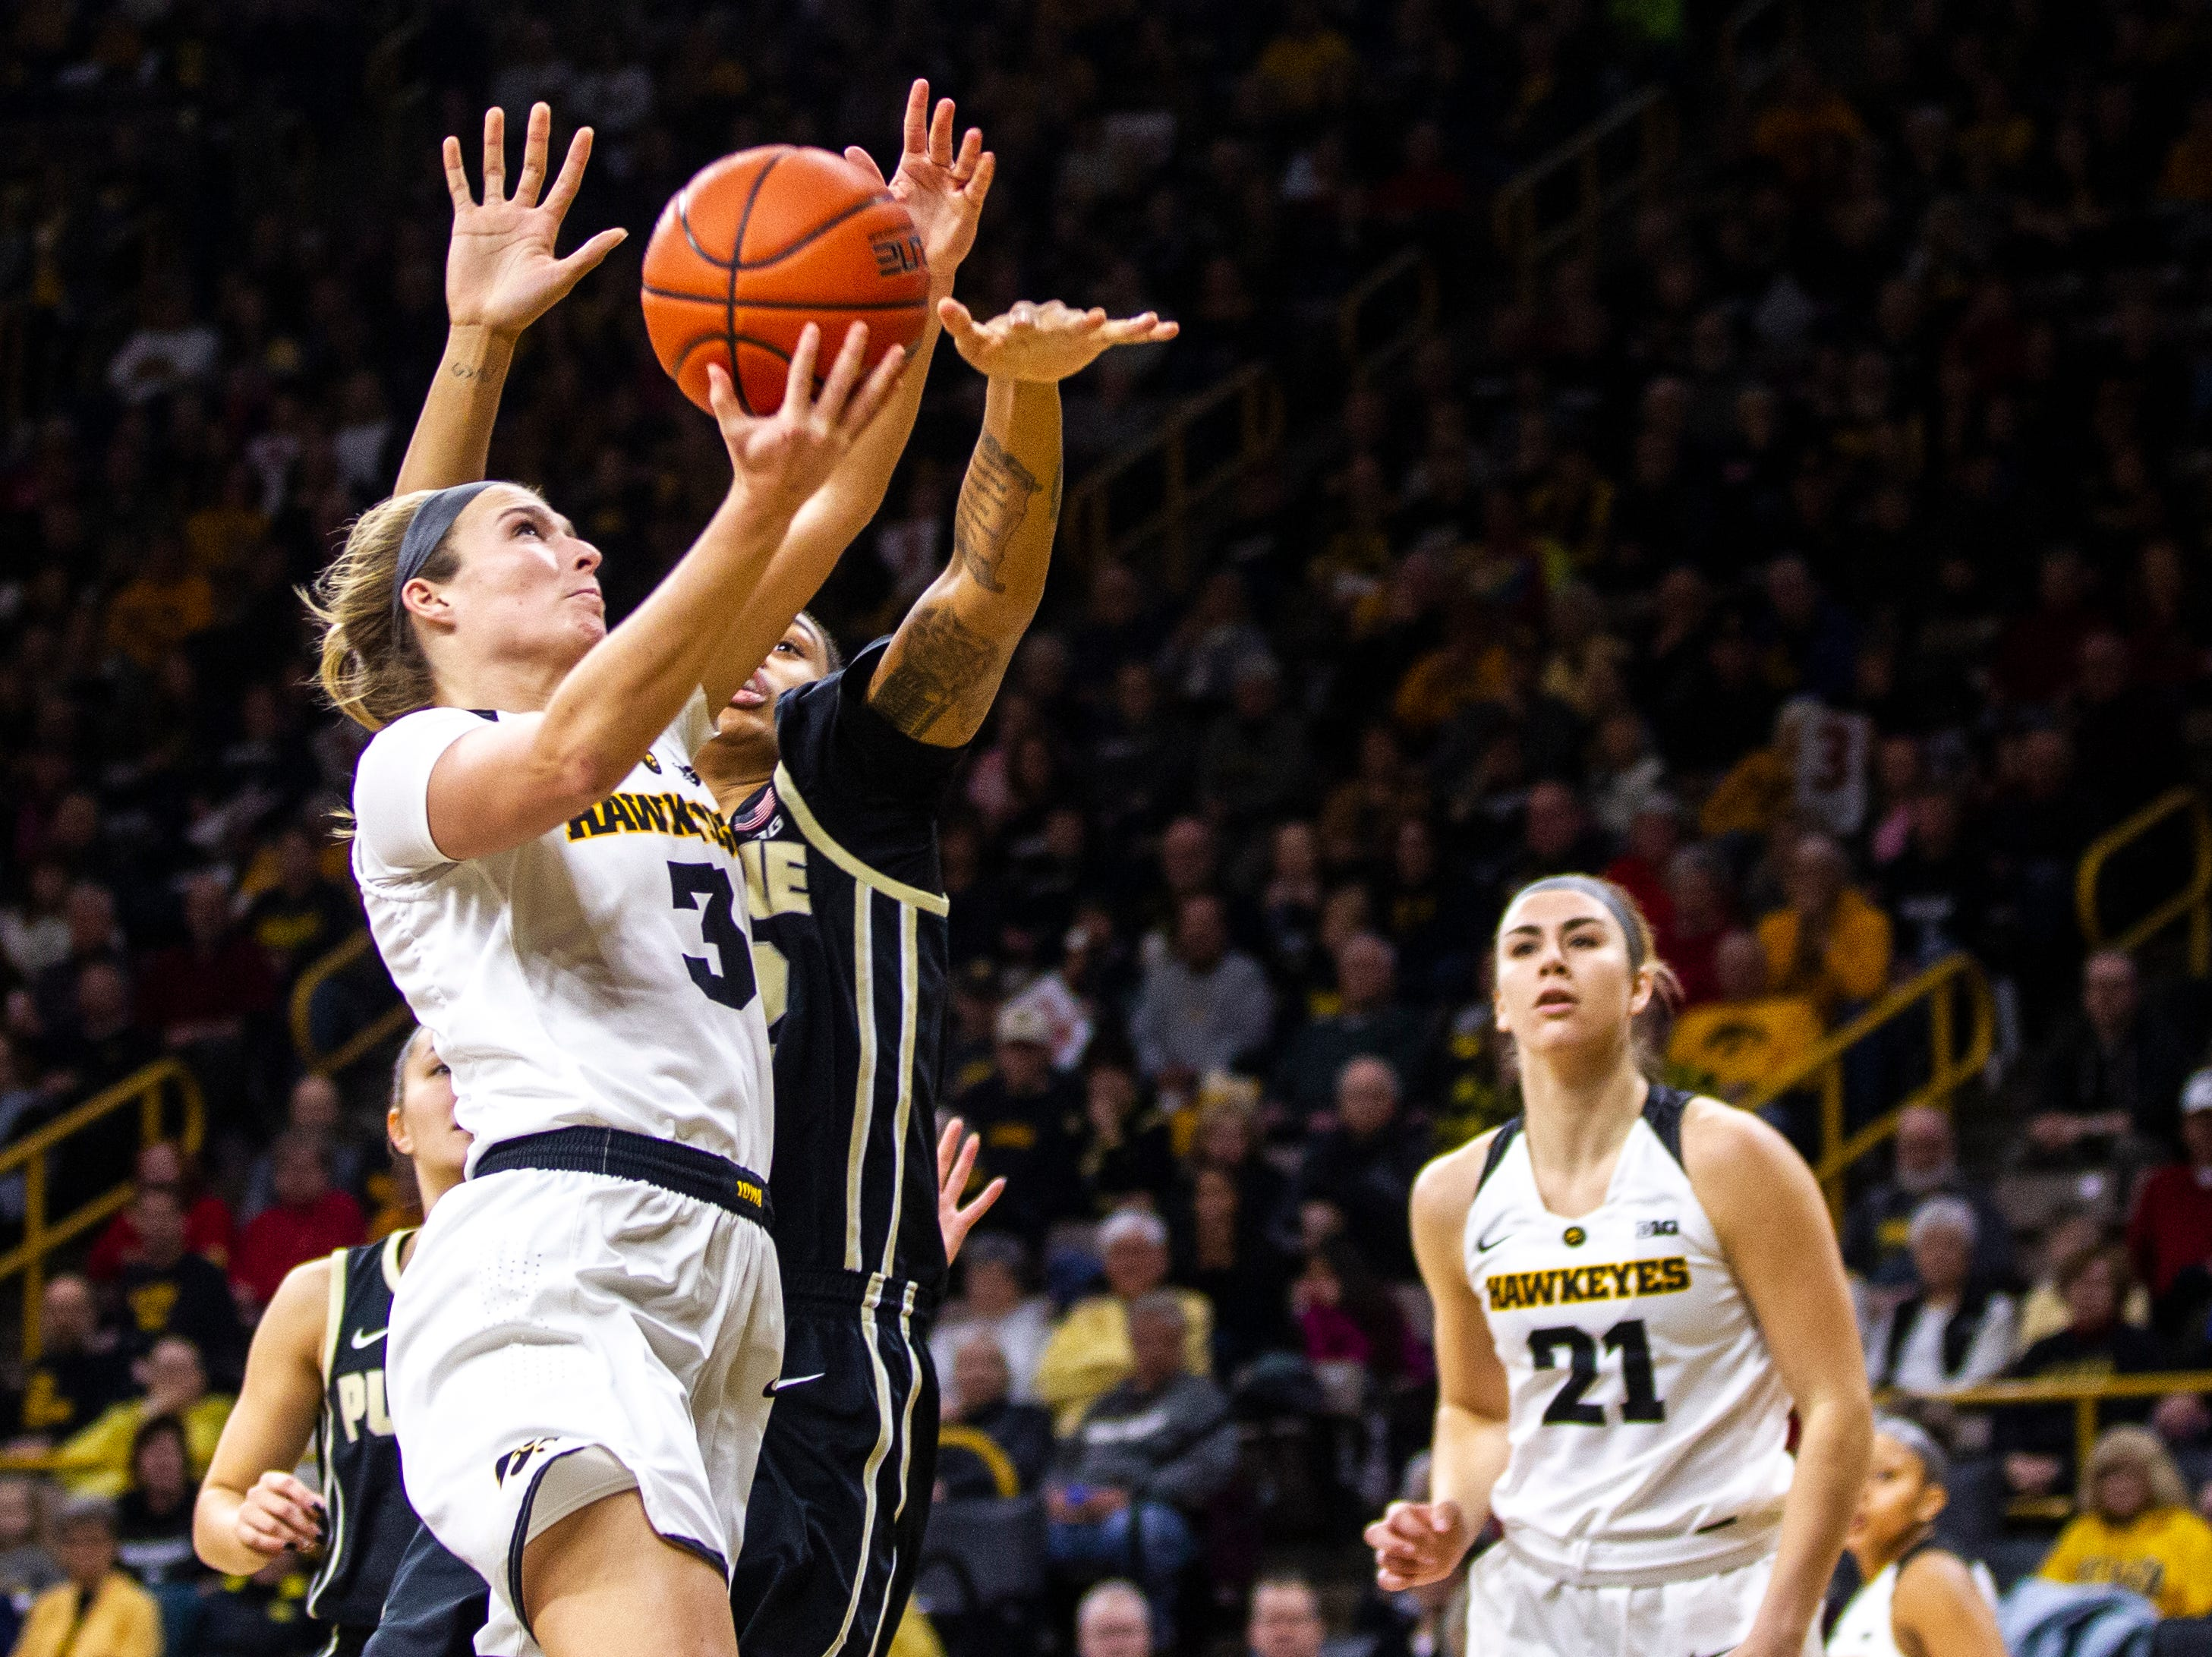 Iowa guard Makenzie Meyer (3) drives to the hoop for a layup during a NCAA Big Ten Conference women's basketball game on Sunday, Jan. 27, 2019, at Carver-Hawkeye Arena in Iowa City, Iowa.